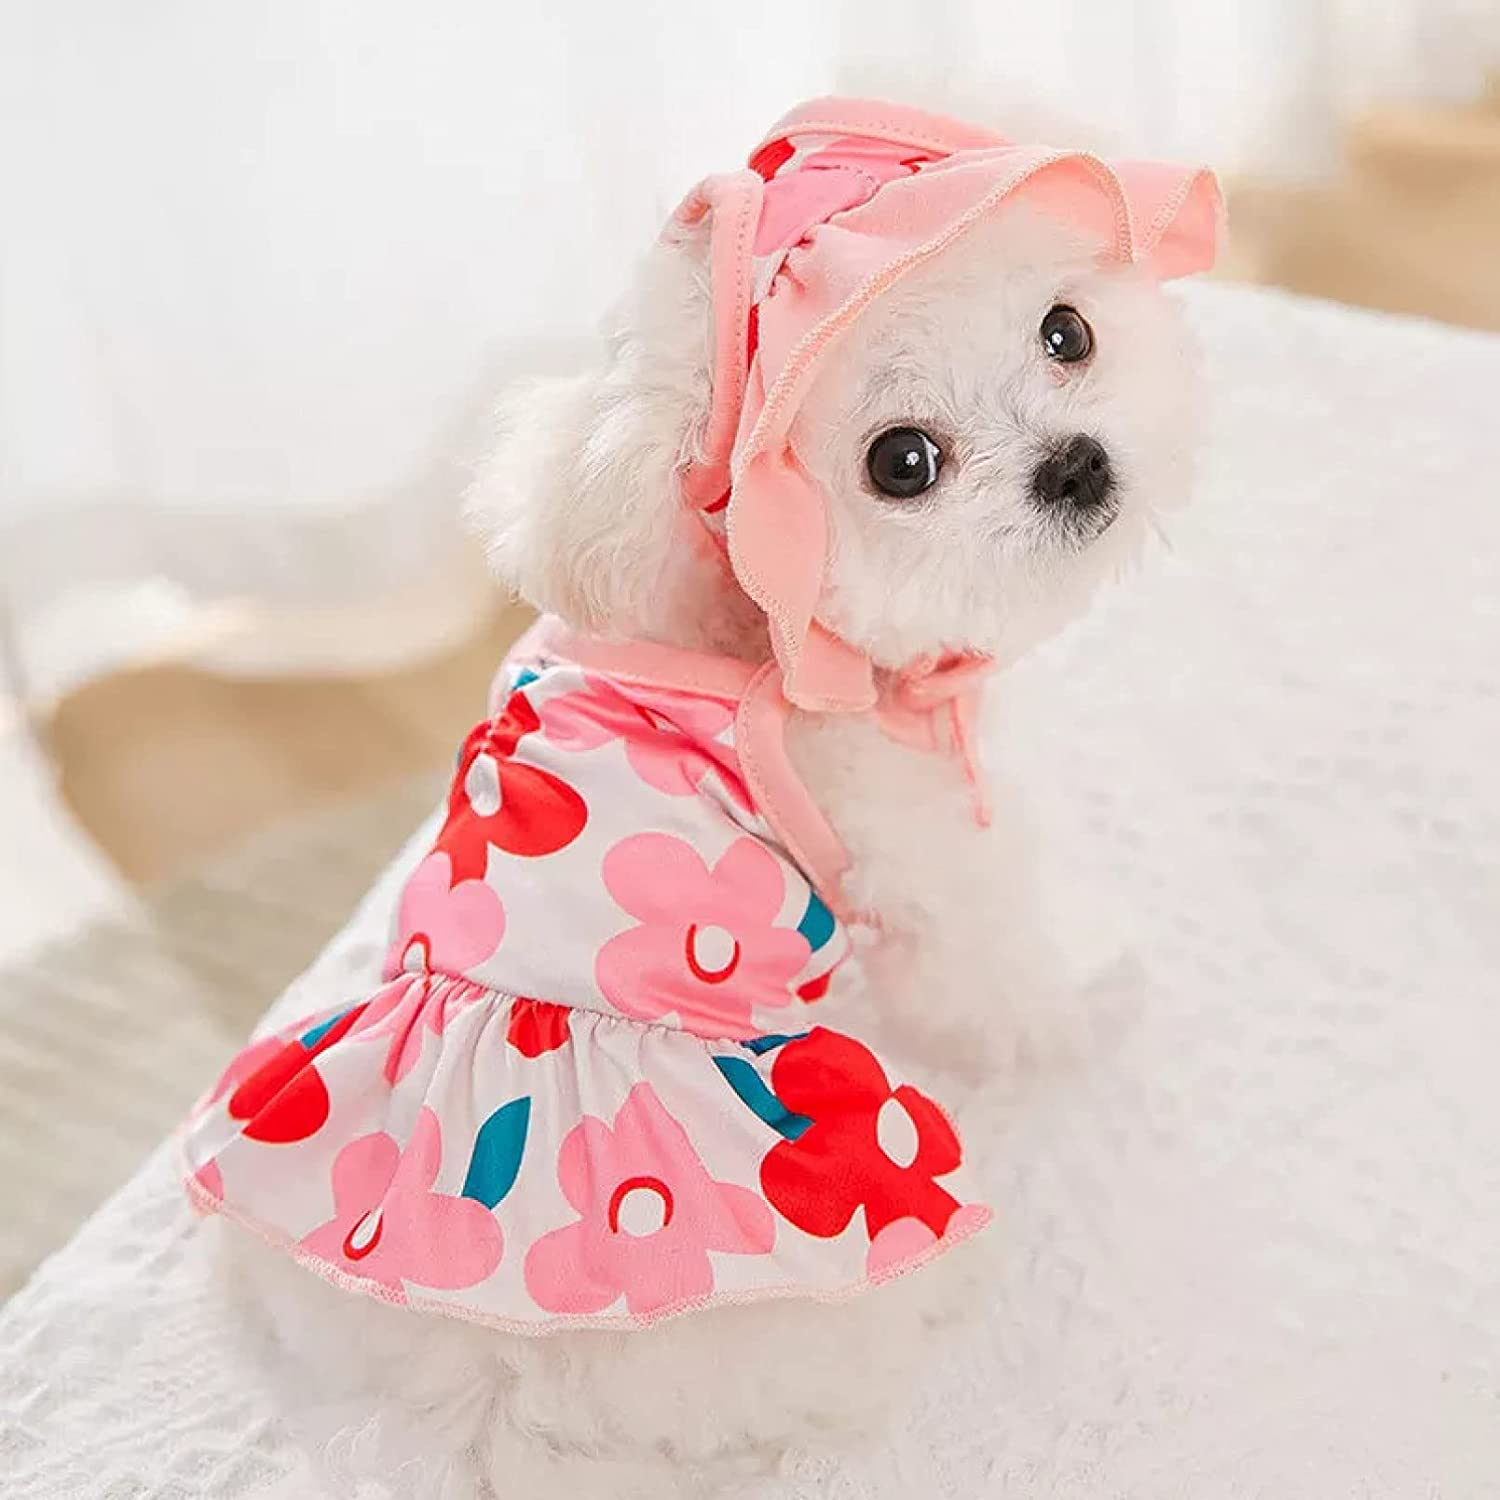 MDKAZ Sale SALE% OFF Bombing new work Clothes for Pets Dog Summer Hat Dress with Sweat Swimwear